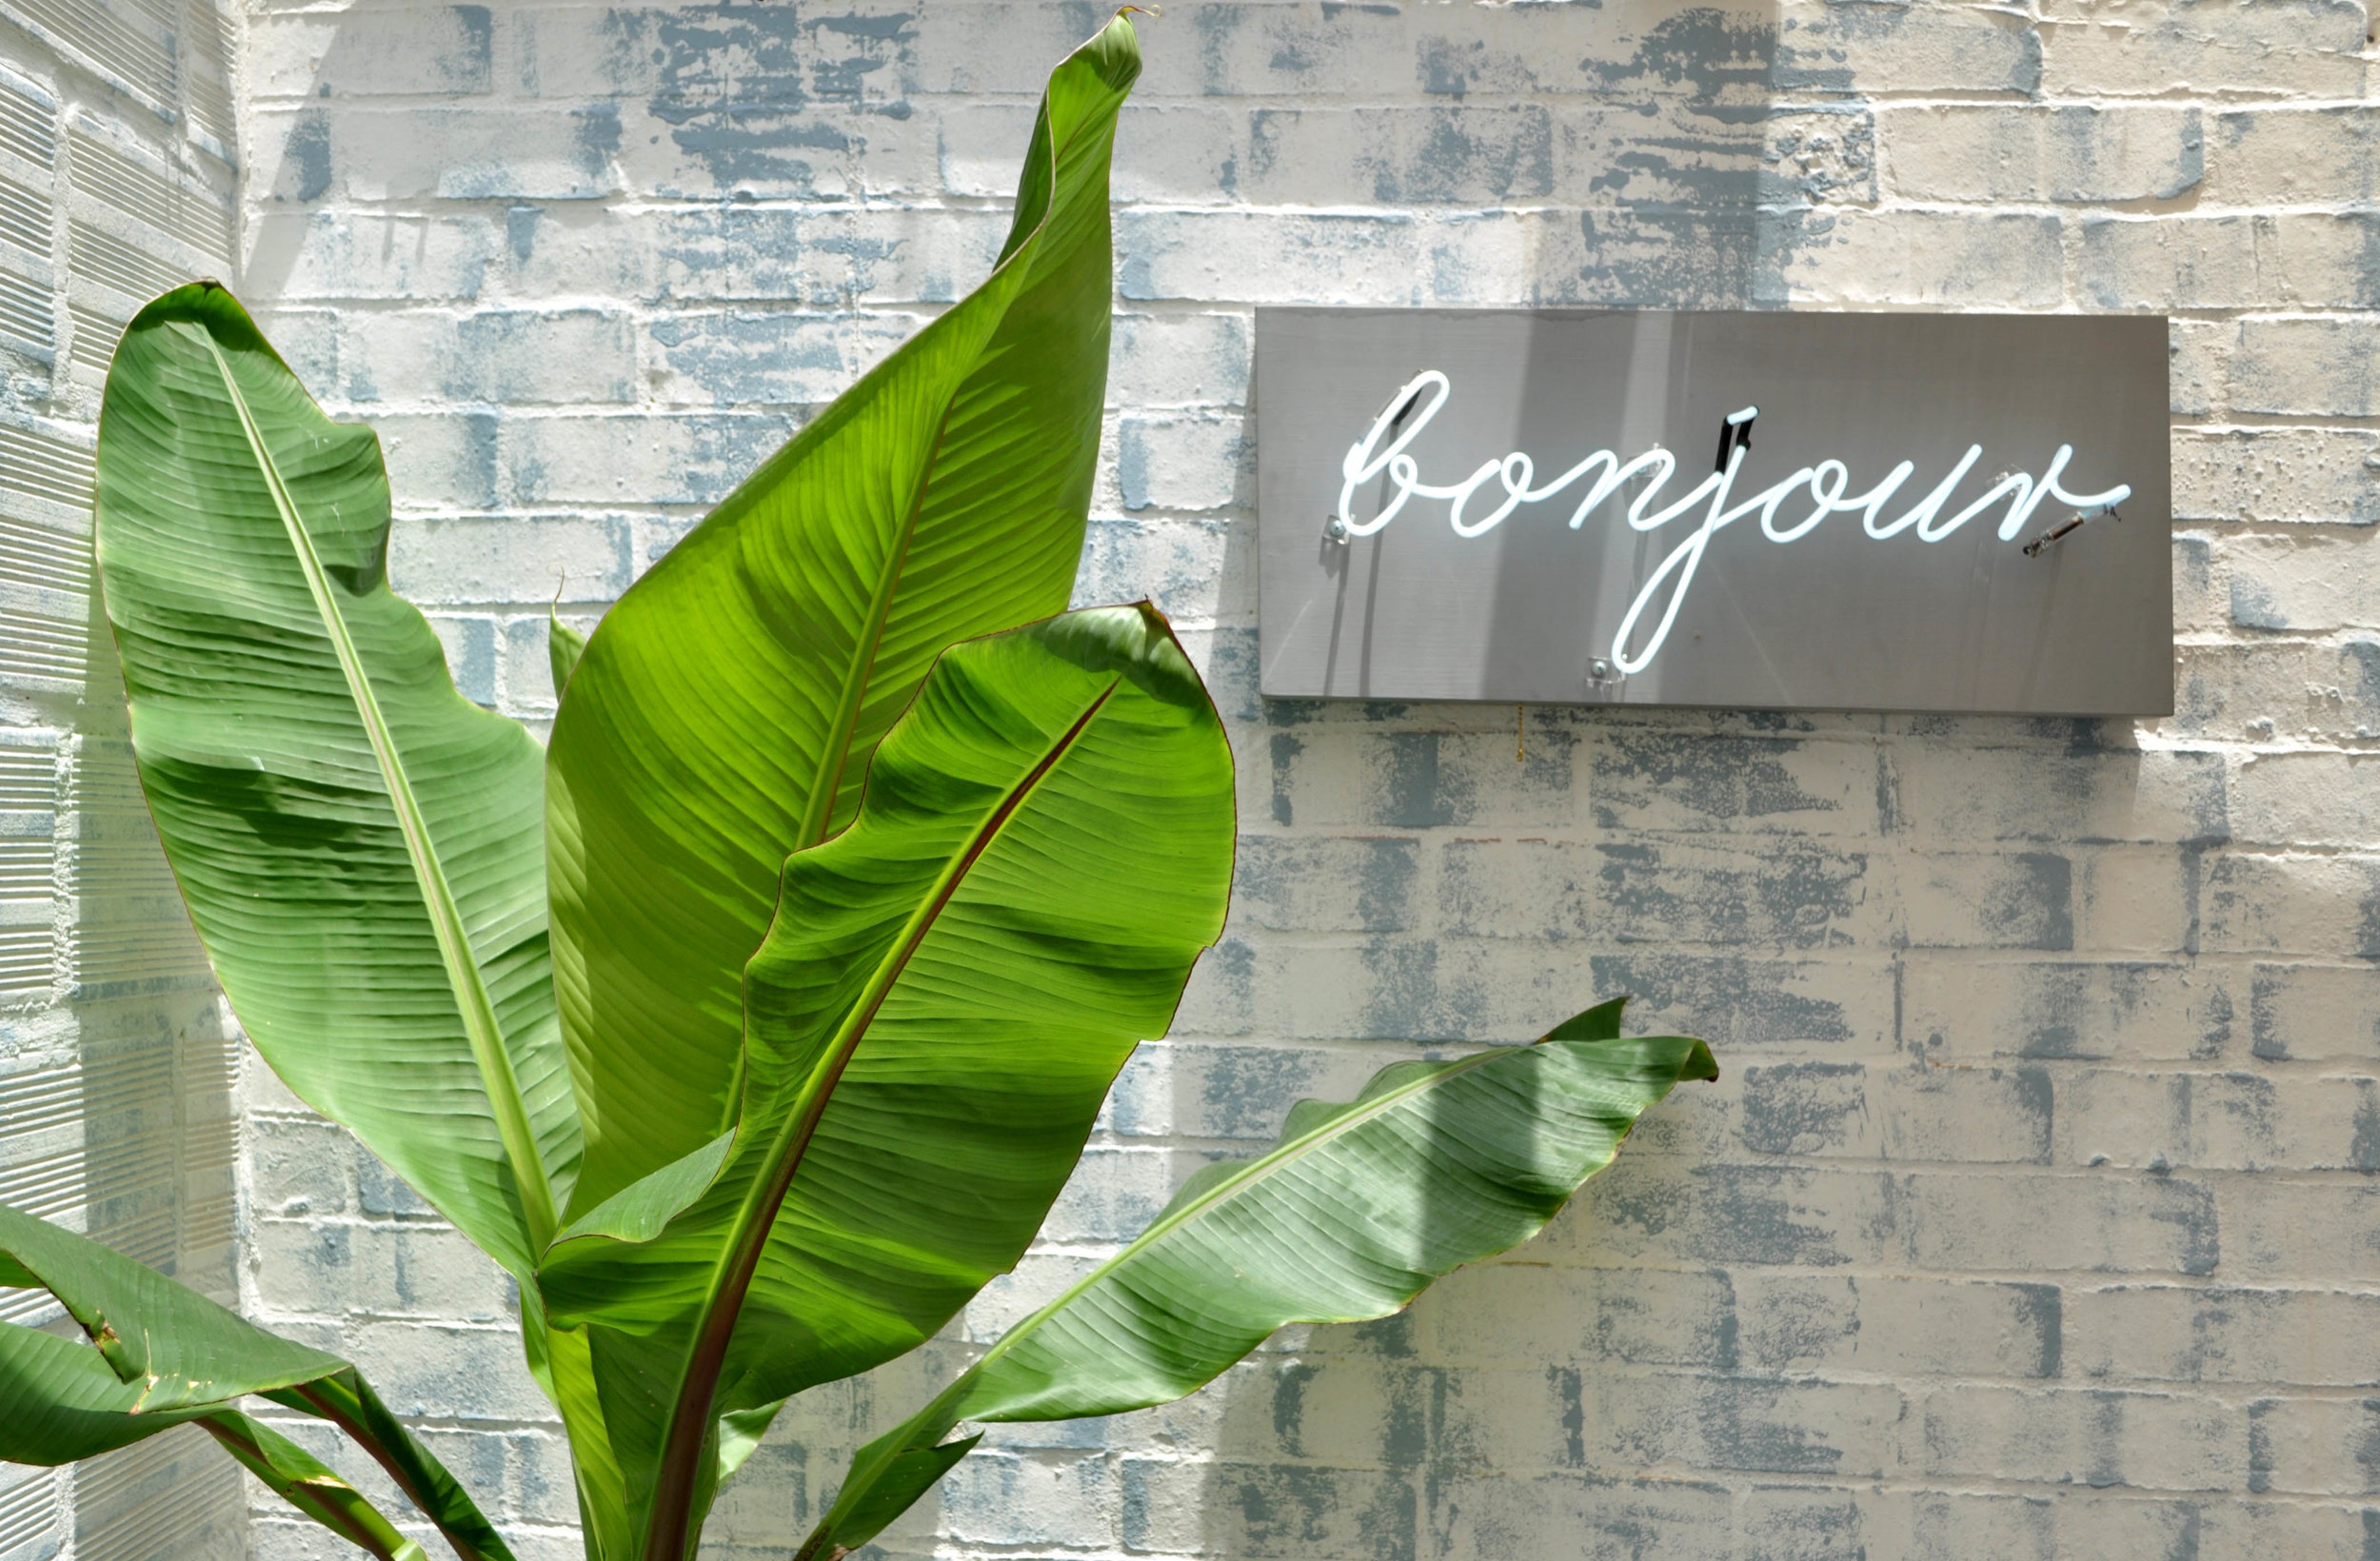 A brick wall brushed with white and blue paint, vintage-feel signage and lush palms add a youthful touch.